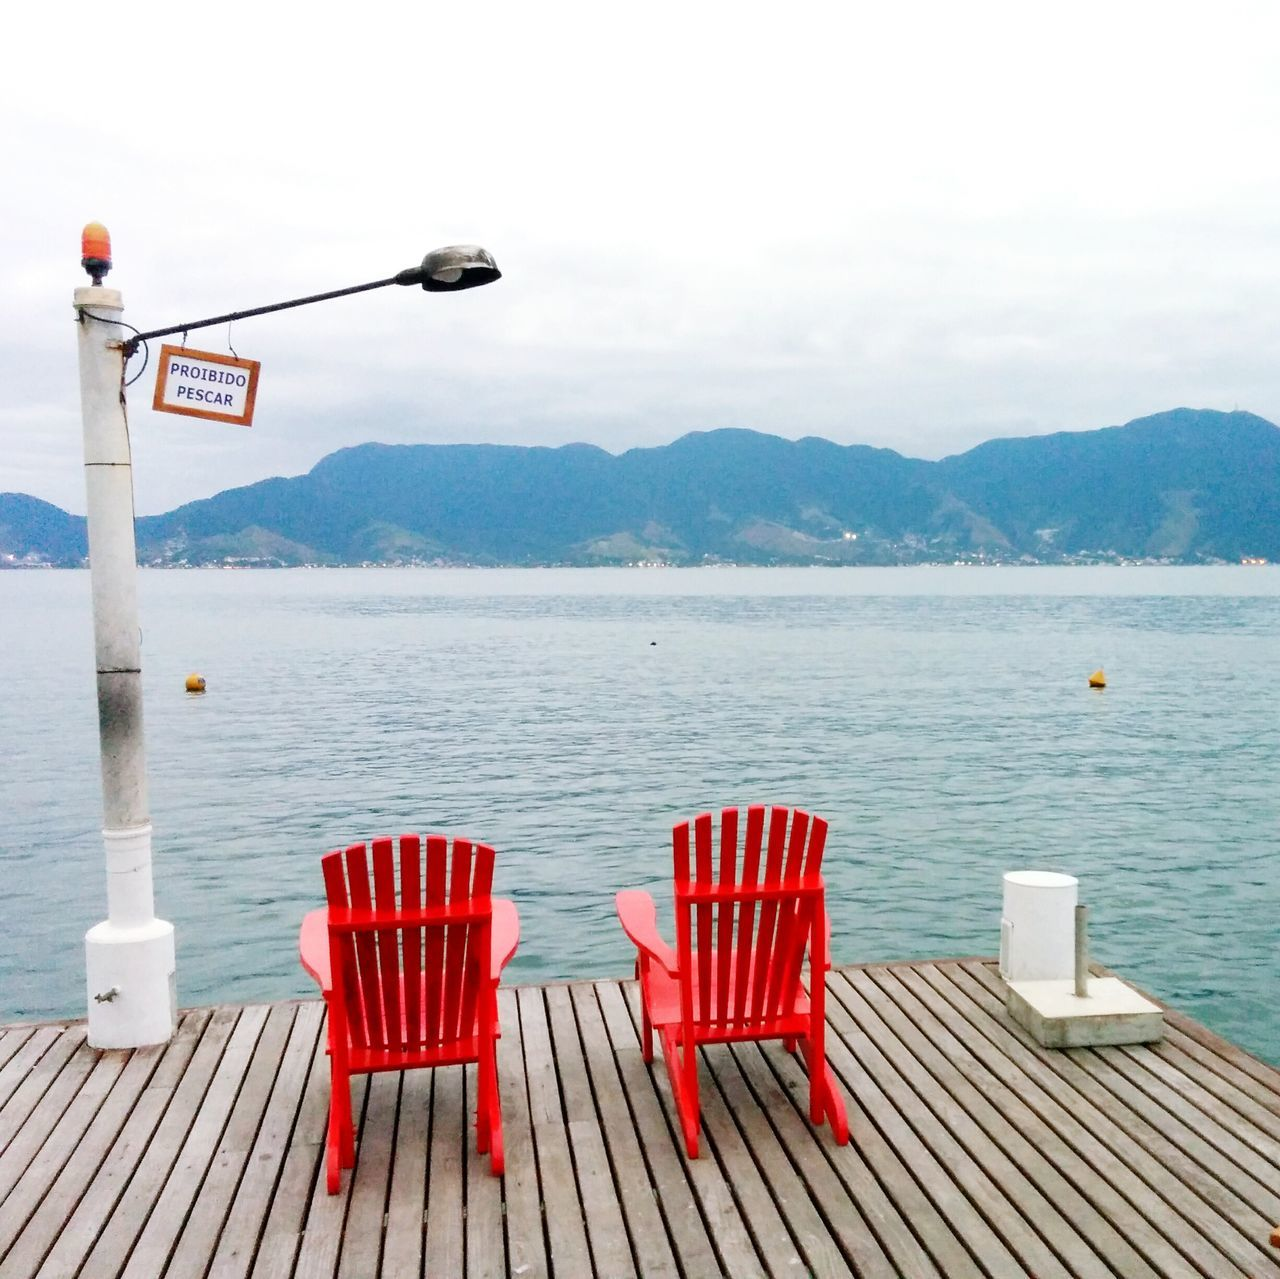 Empty Chairs Overlooking Calm Lake